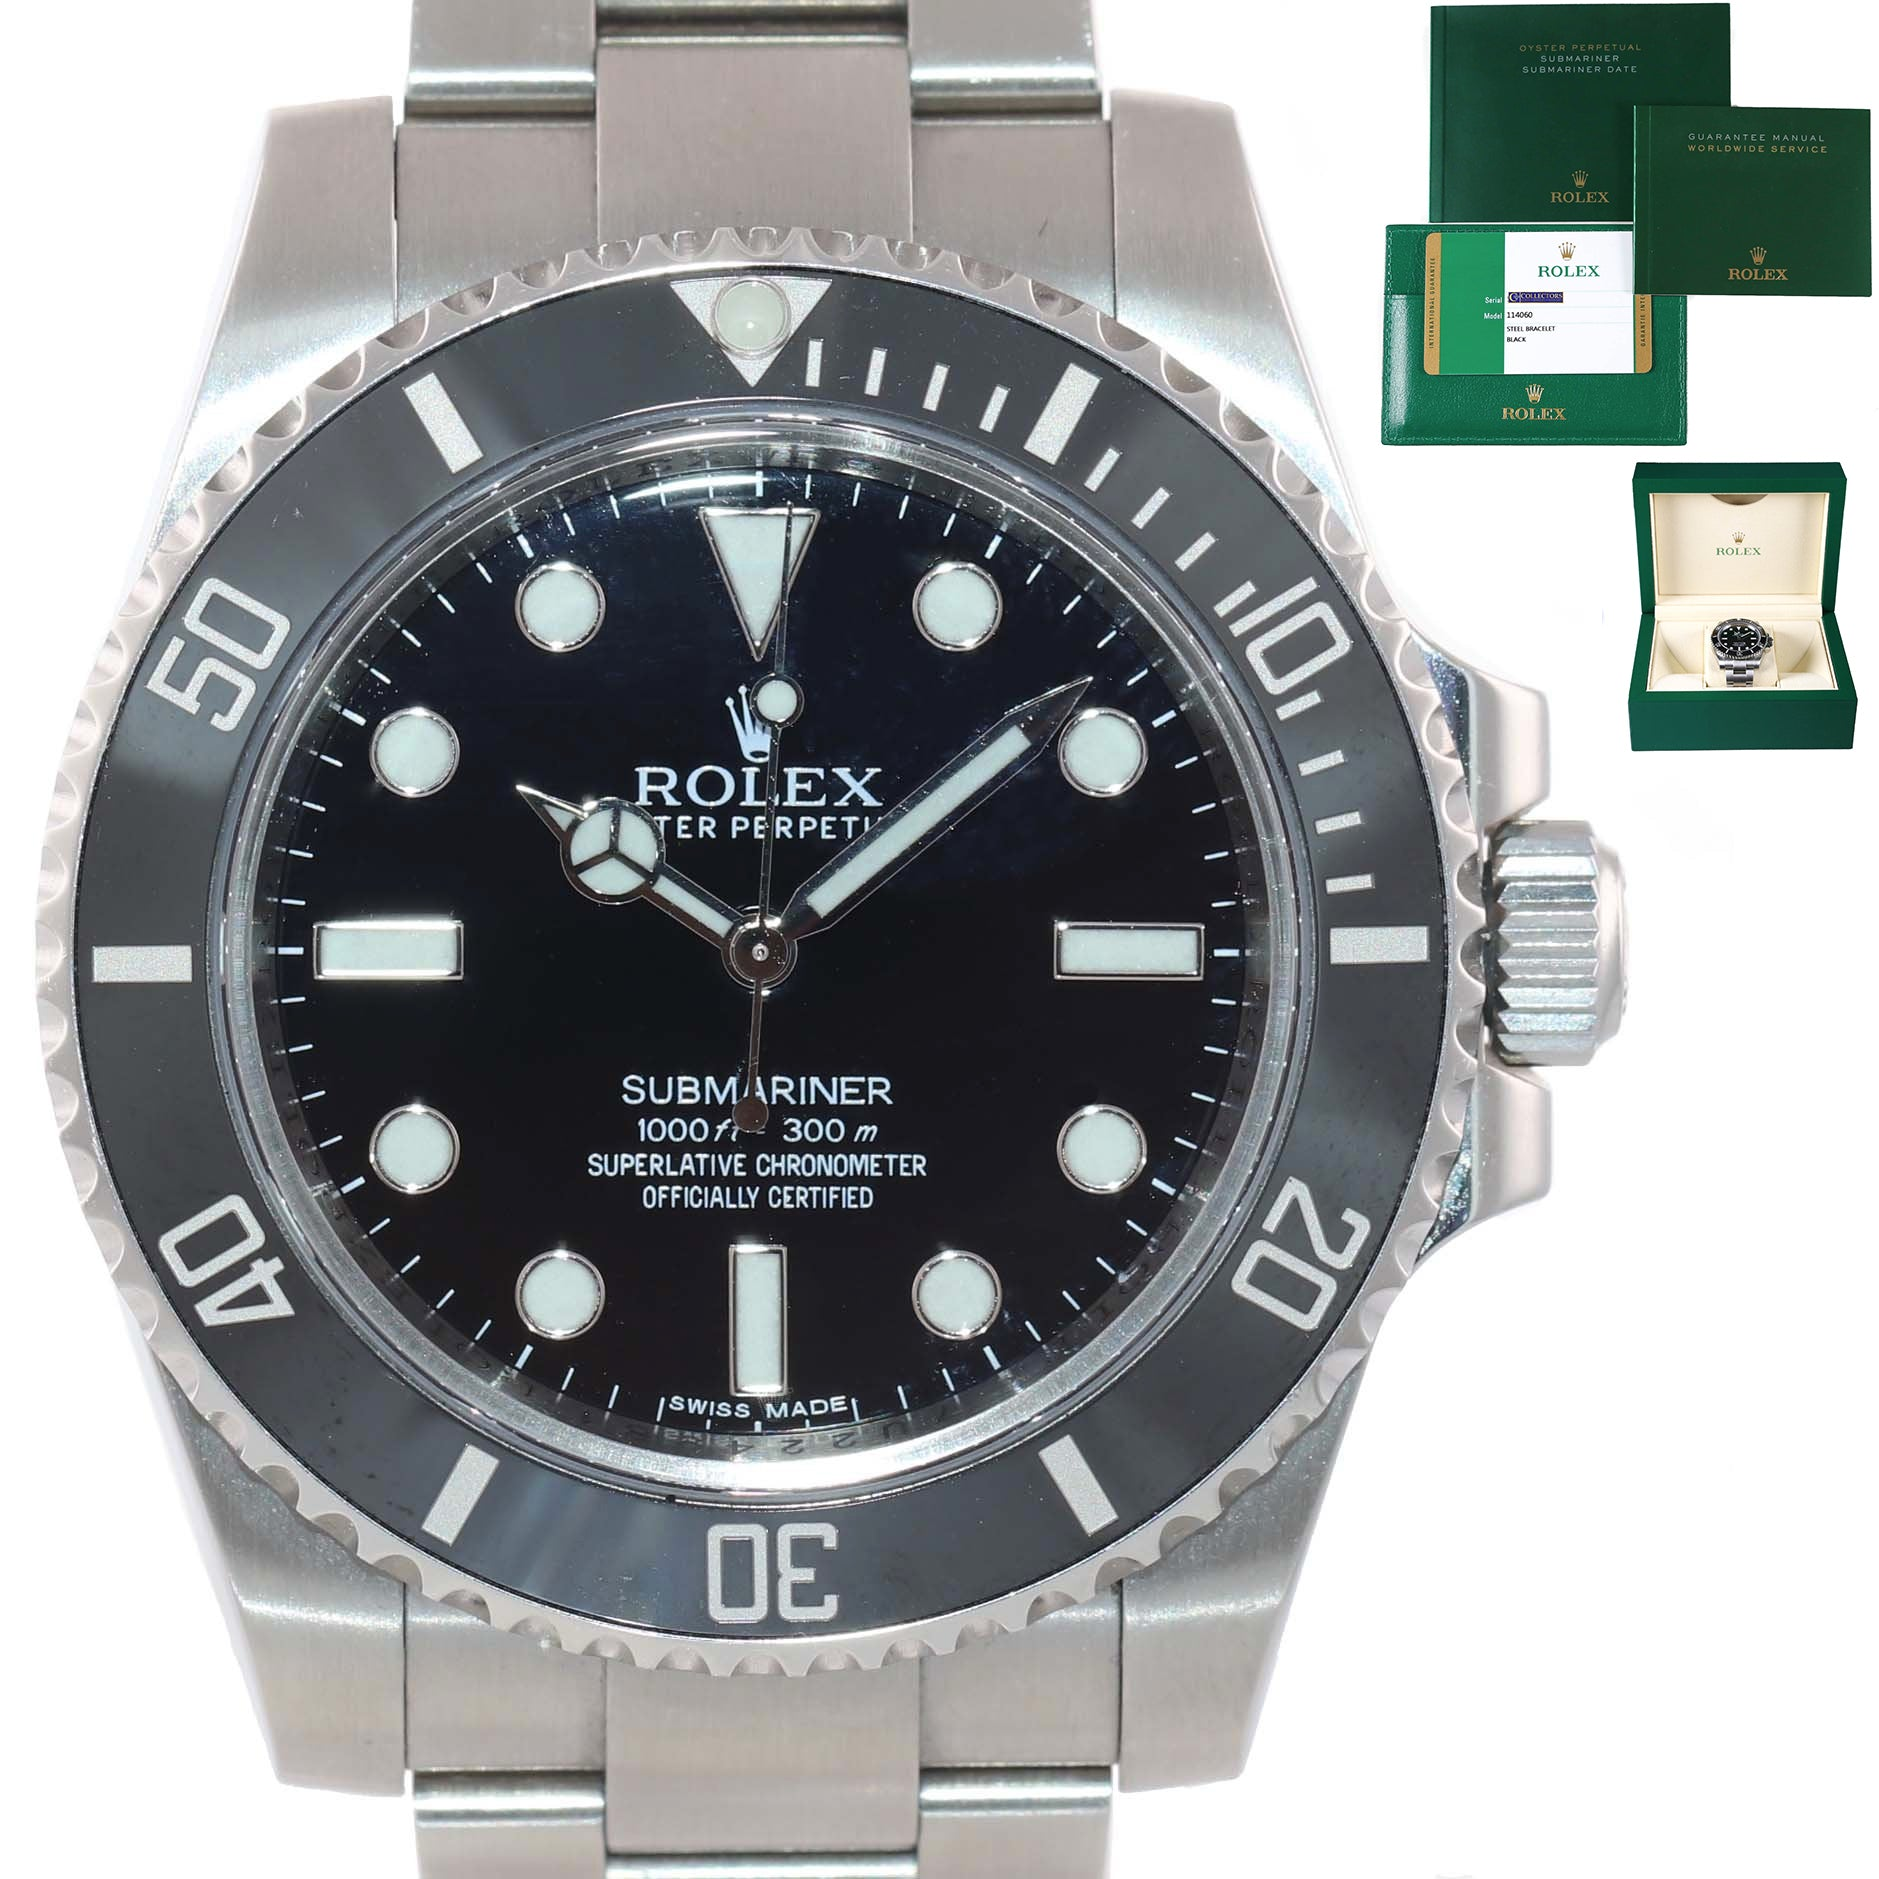 2017 PAPERS MINT Rolex Submariner No-Date 114060 Steel Black Ceramic Watch Box